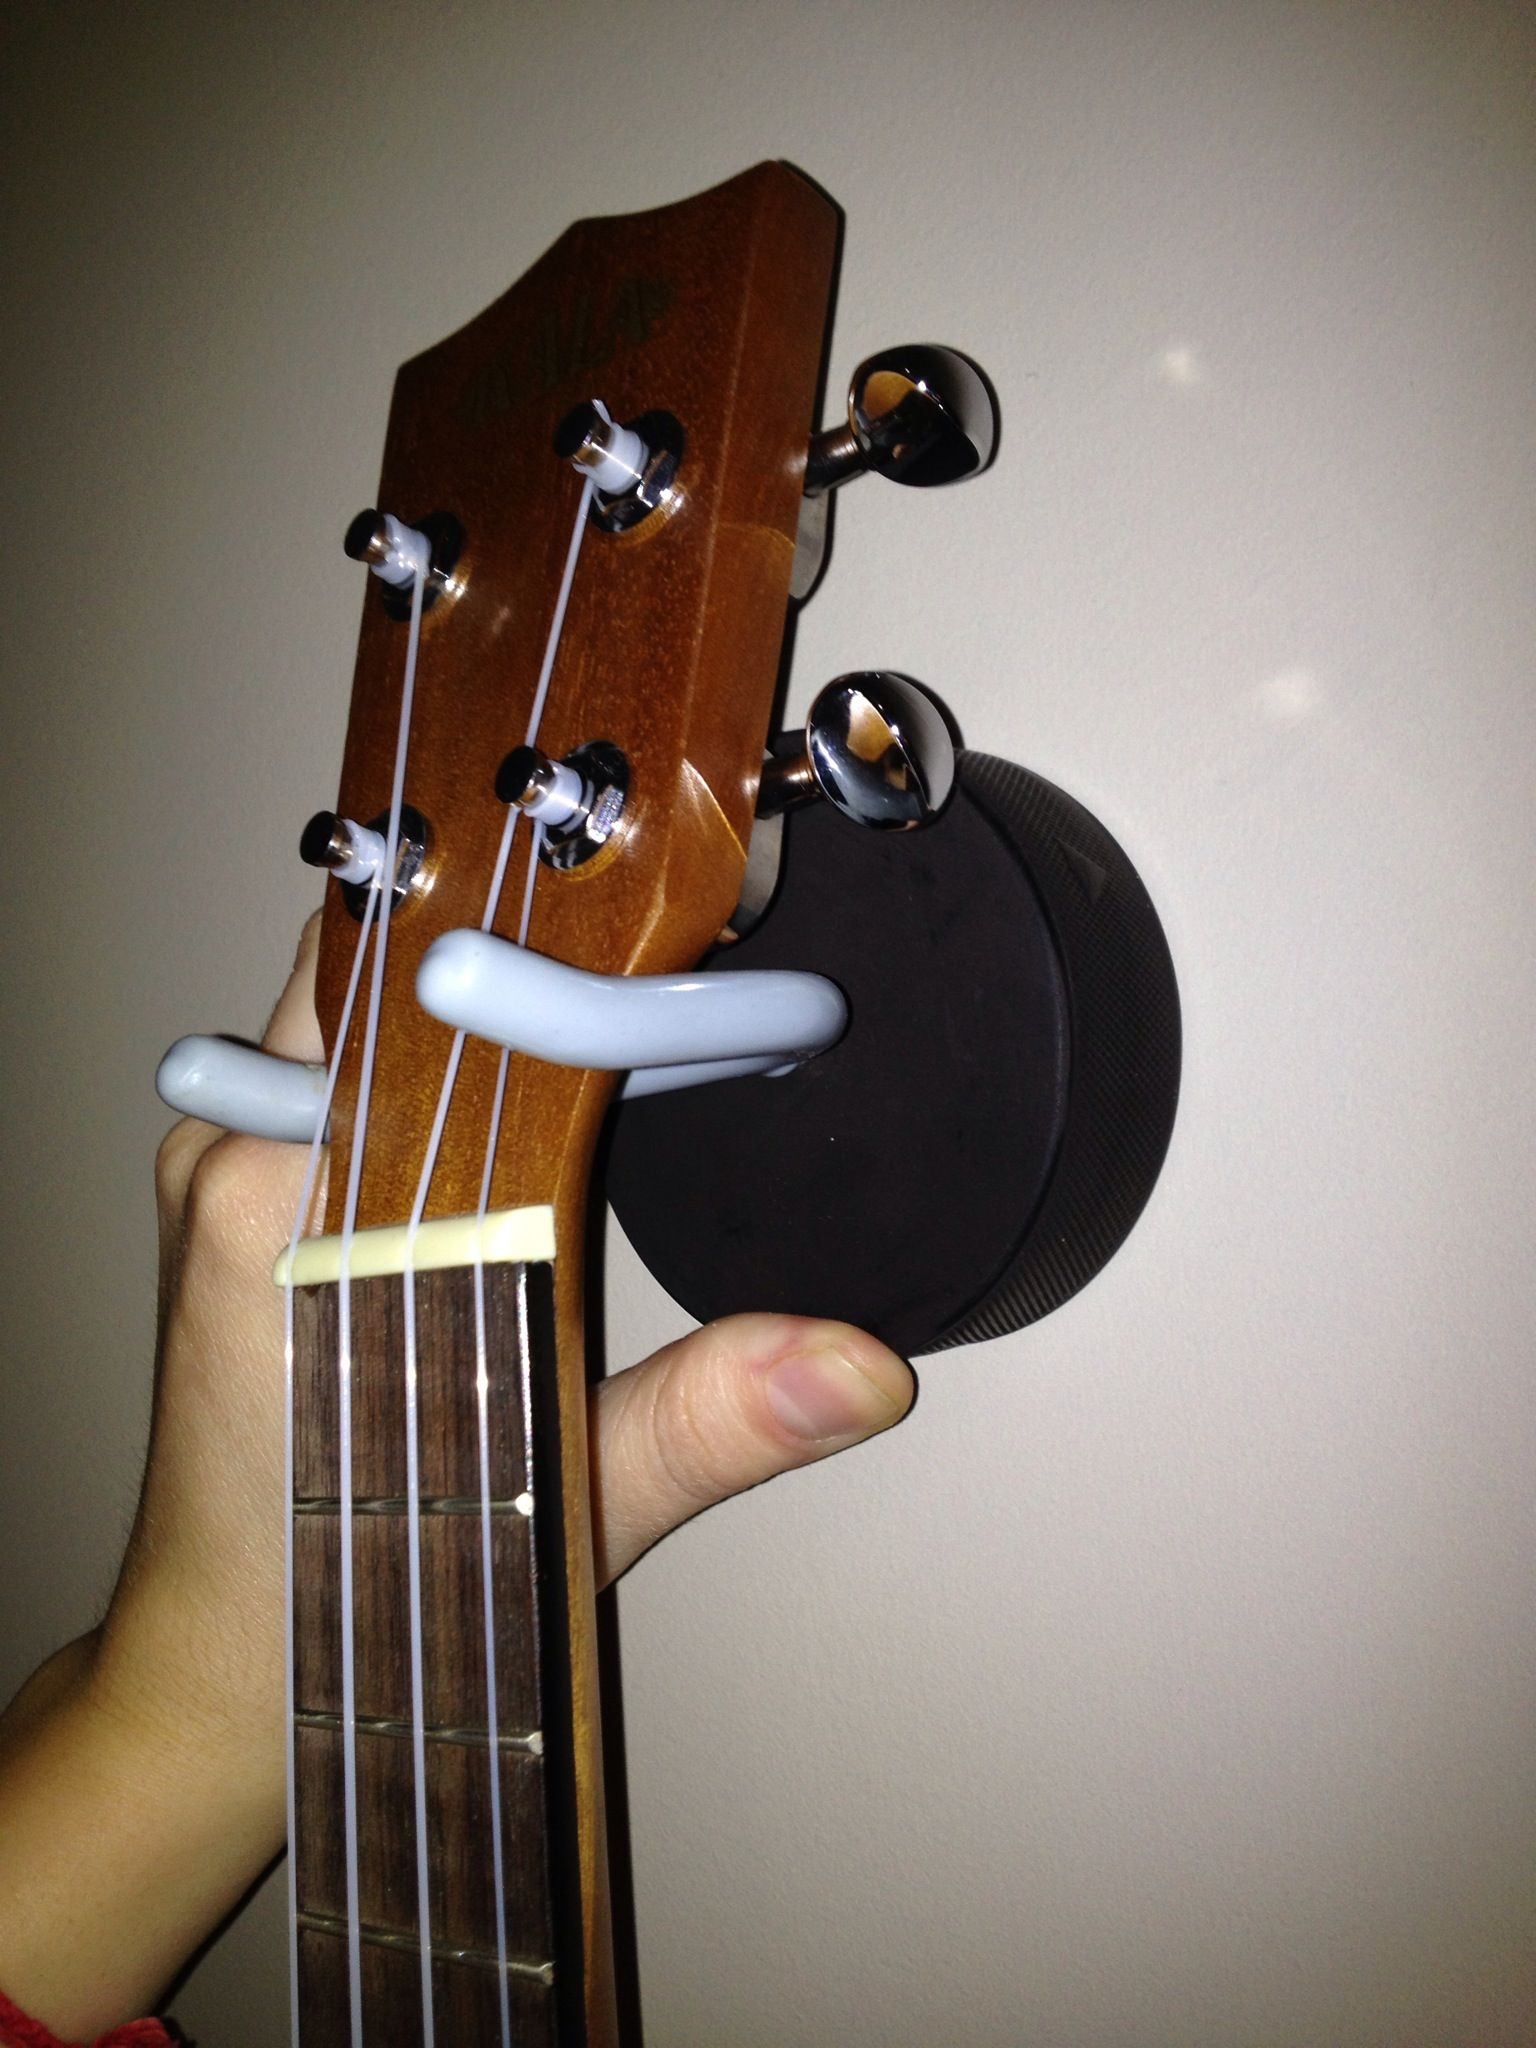 15 Excellent Bass Guitar Wall Mount Hercules Bass Guitar Exercises For Dummies Guitarsofinst Acoustic Guitar Chords Custom Bass Guitar Guitar Chords For Songs